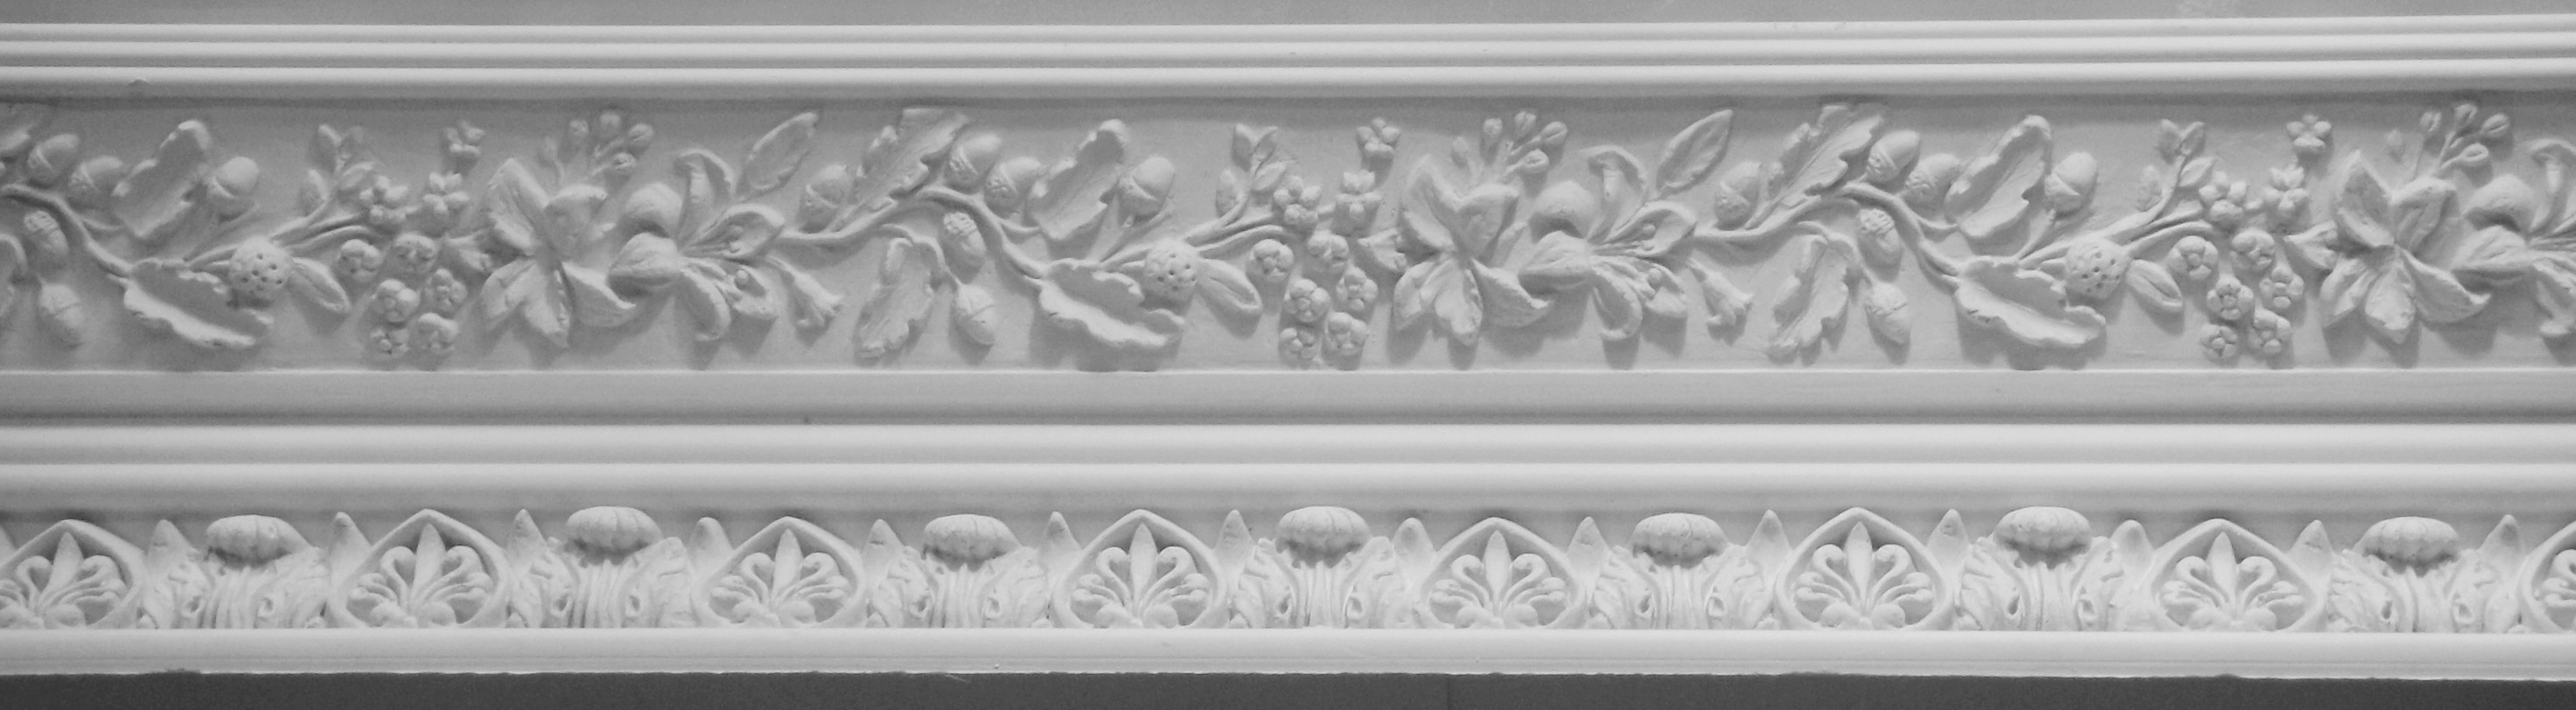 Gypsum Cornices Bailey Interiors Architectural Plaster